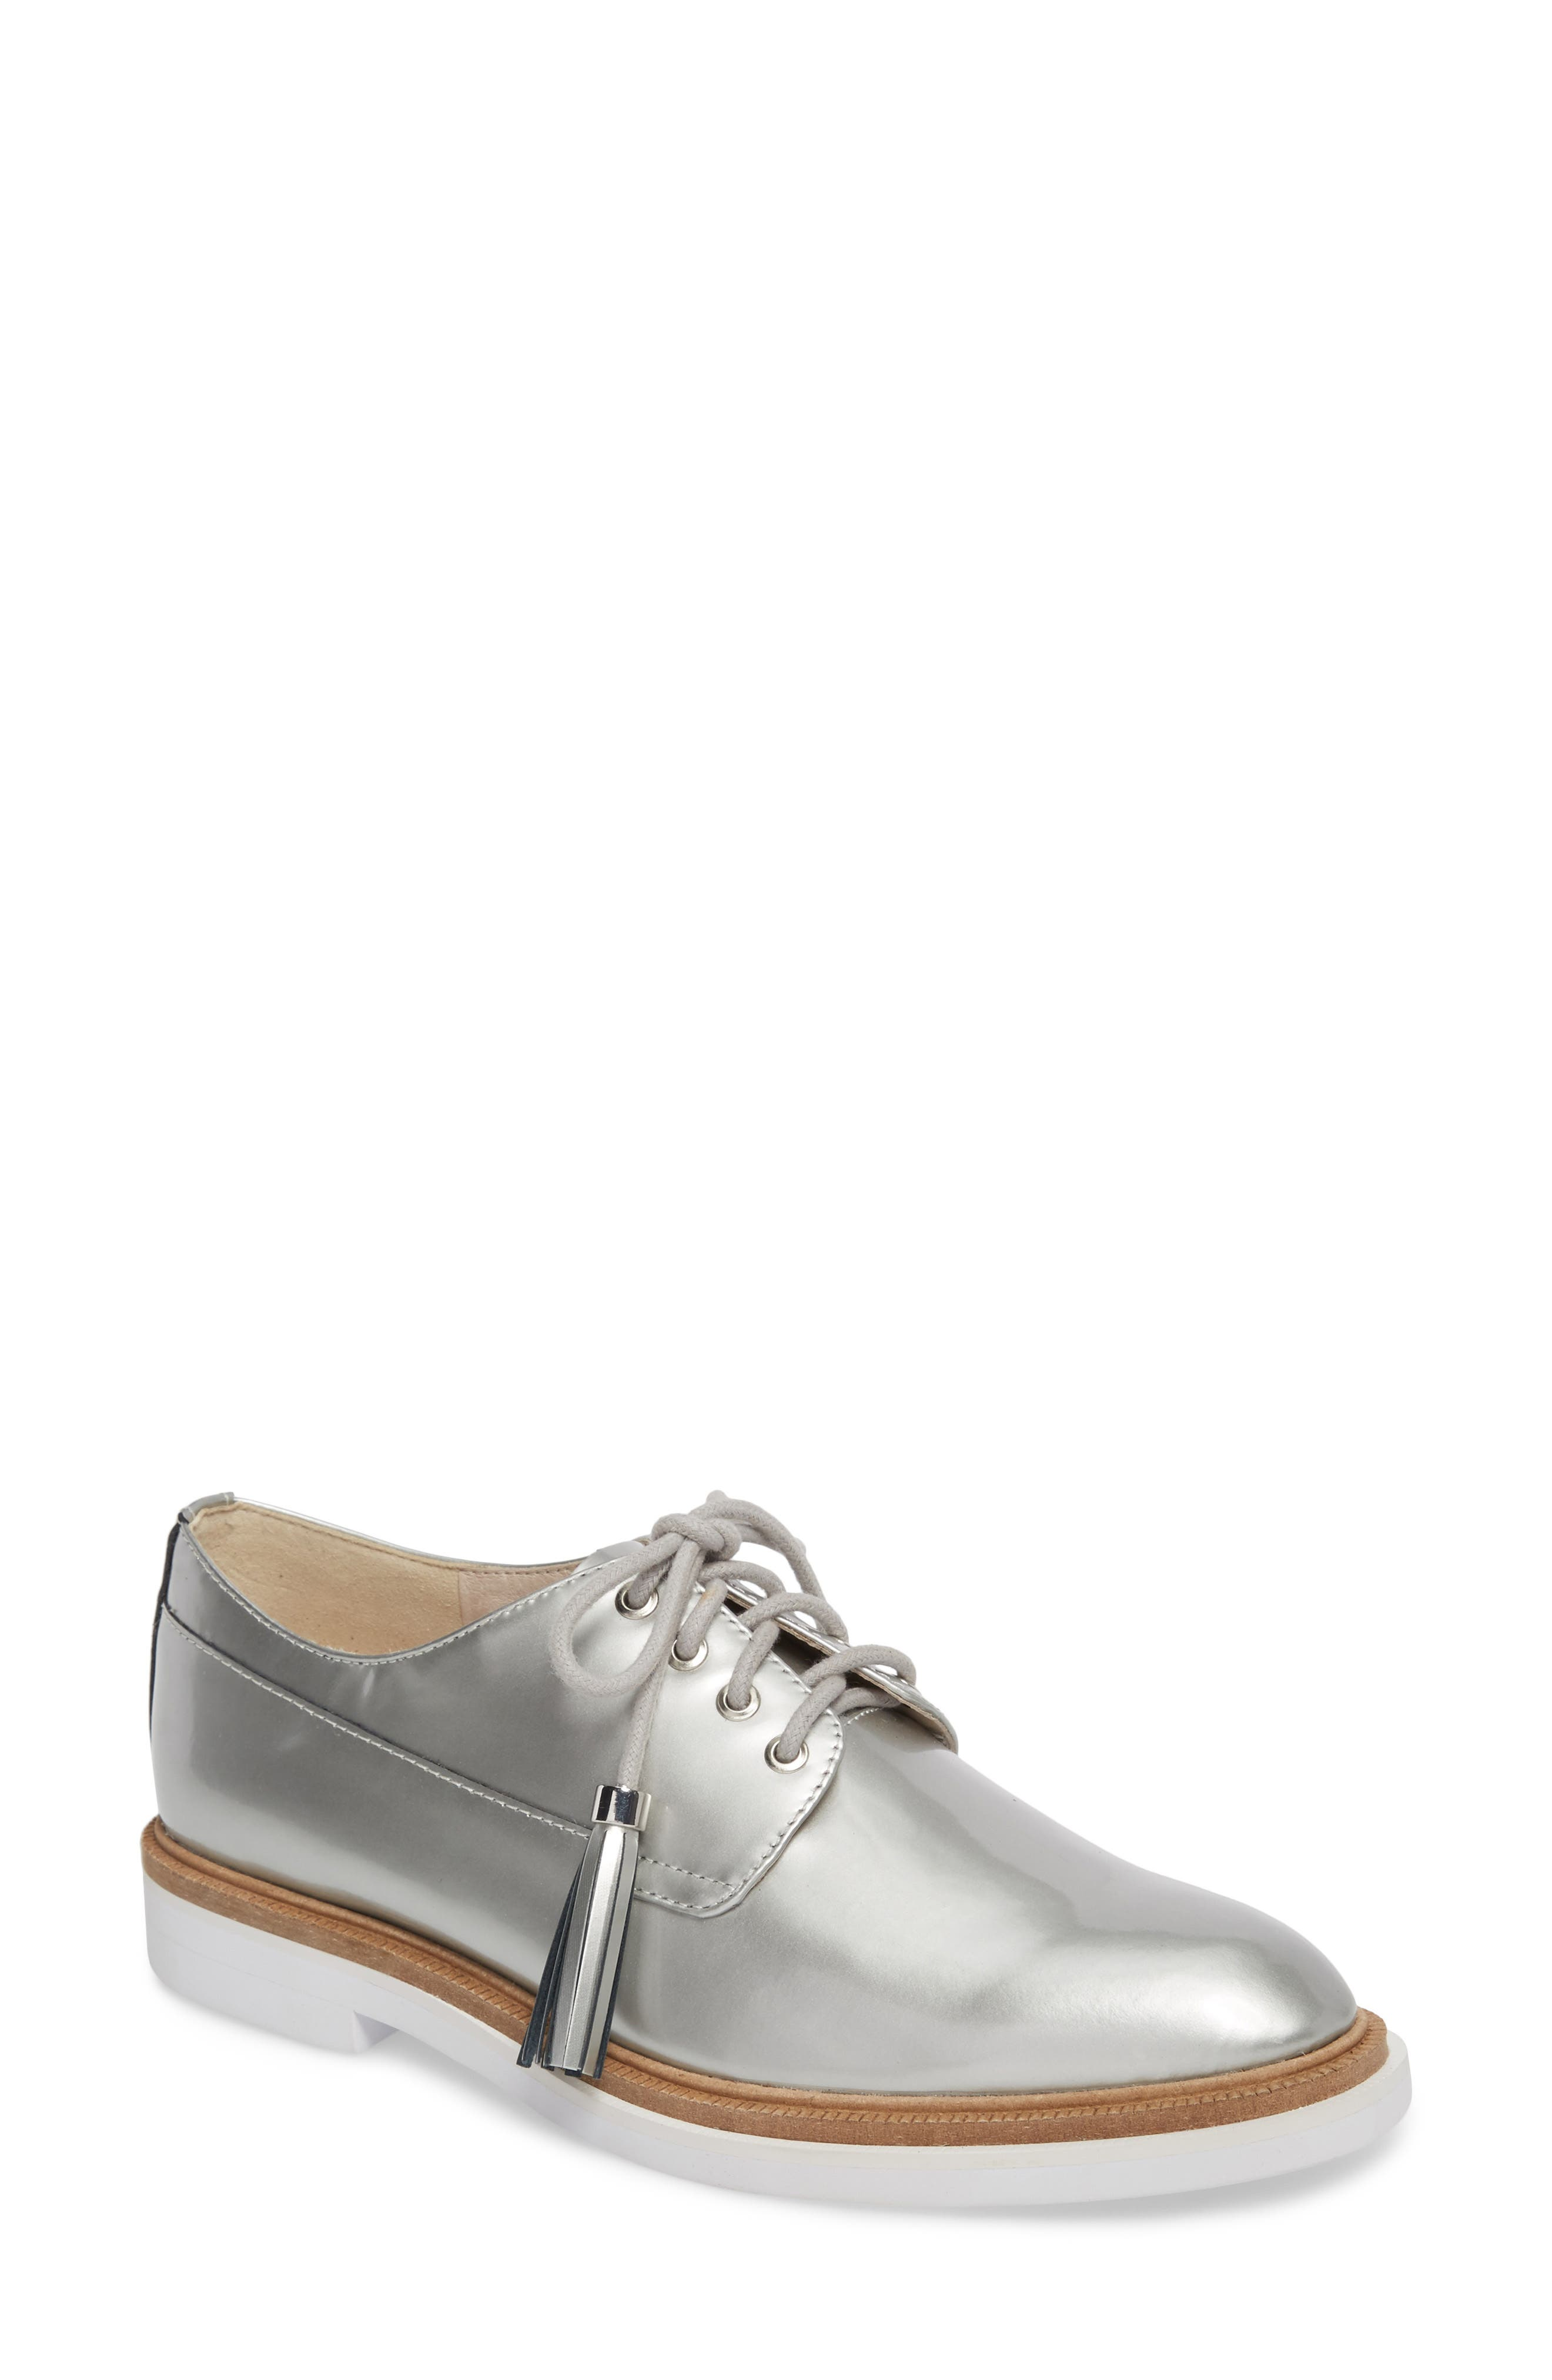 Alternate Image 1 Selected - Kenneth Cole New York Annie Oxford (Women)